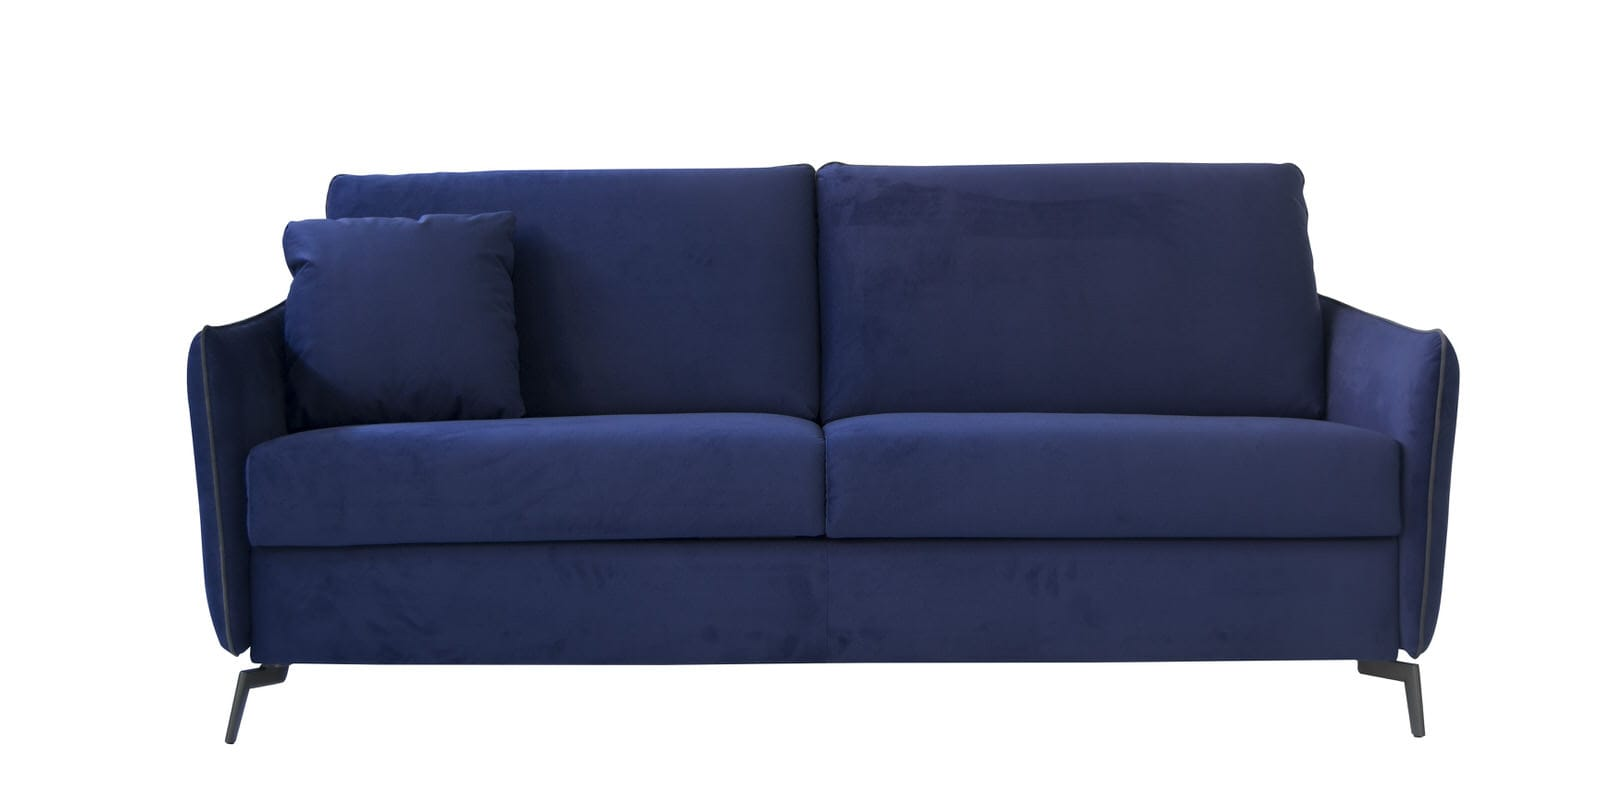 Pleasant Iris Navy Blue Queen Sofa Bed By Pezzan Furniture Frankydiablos Diy Chair Ideas Frankydiabloscom